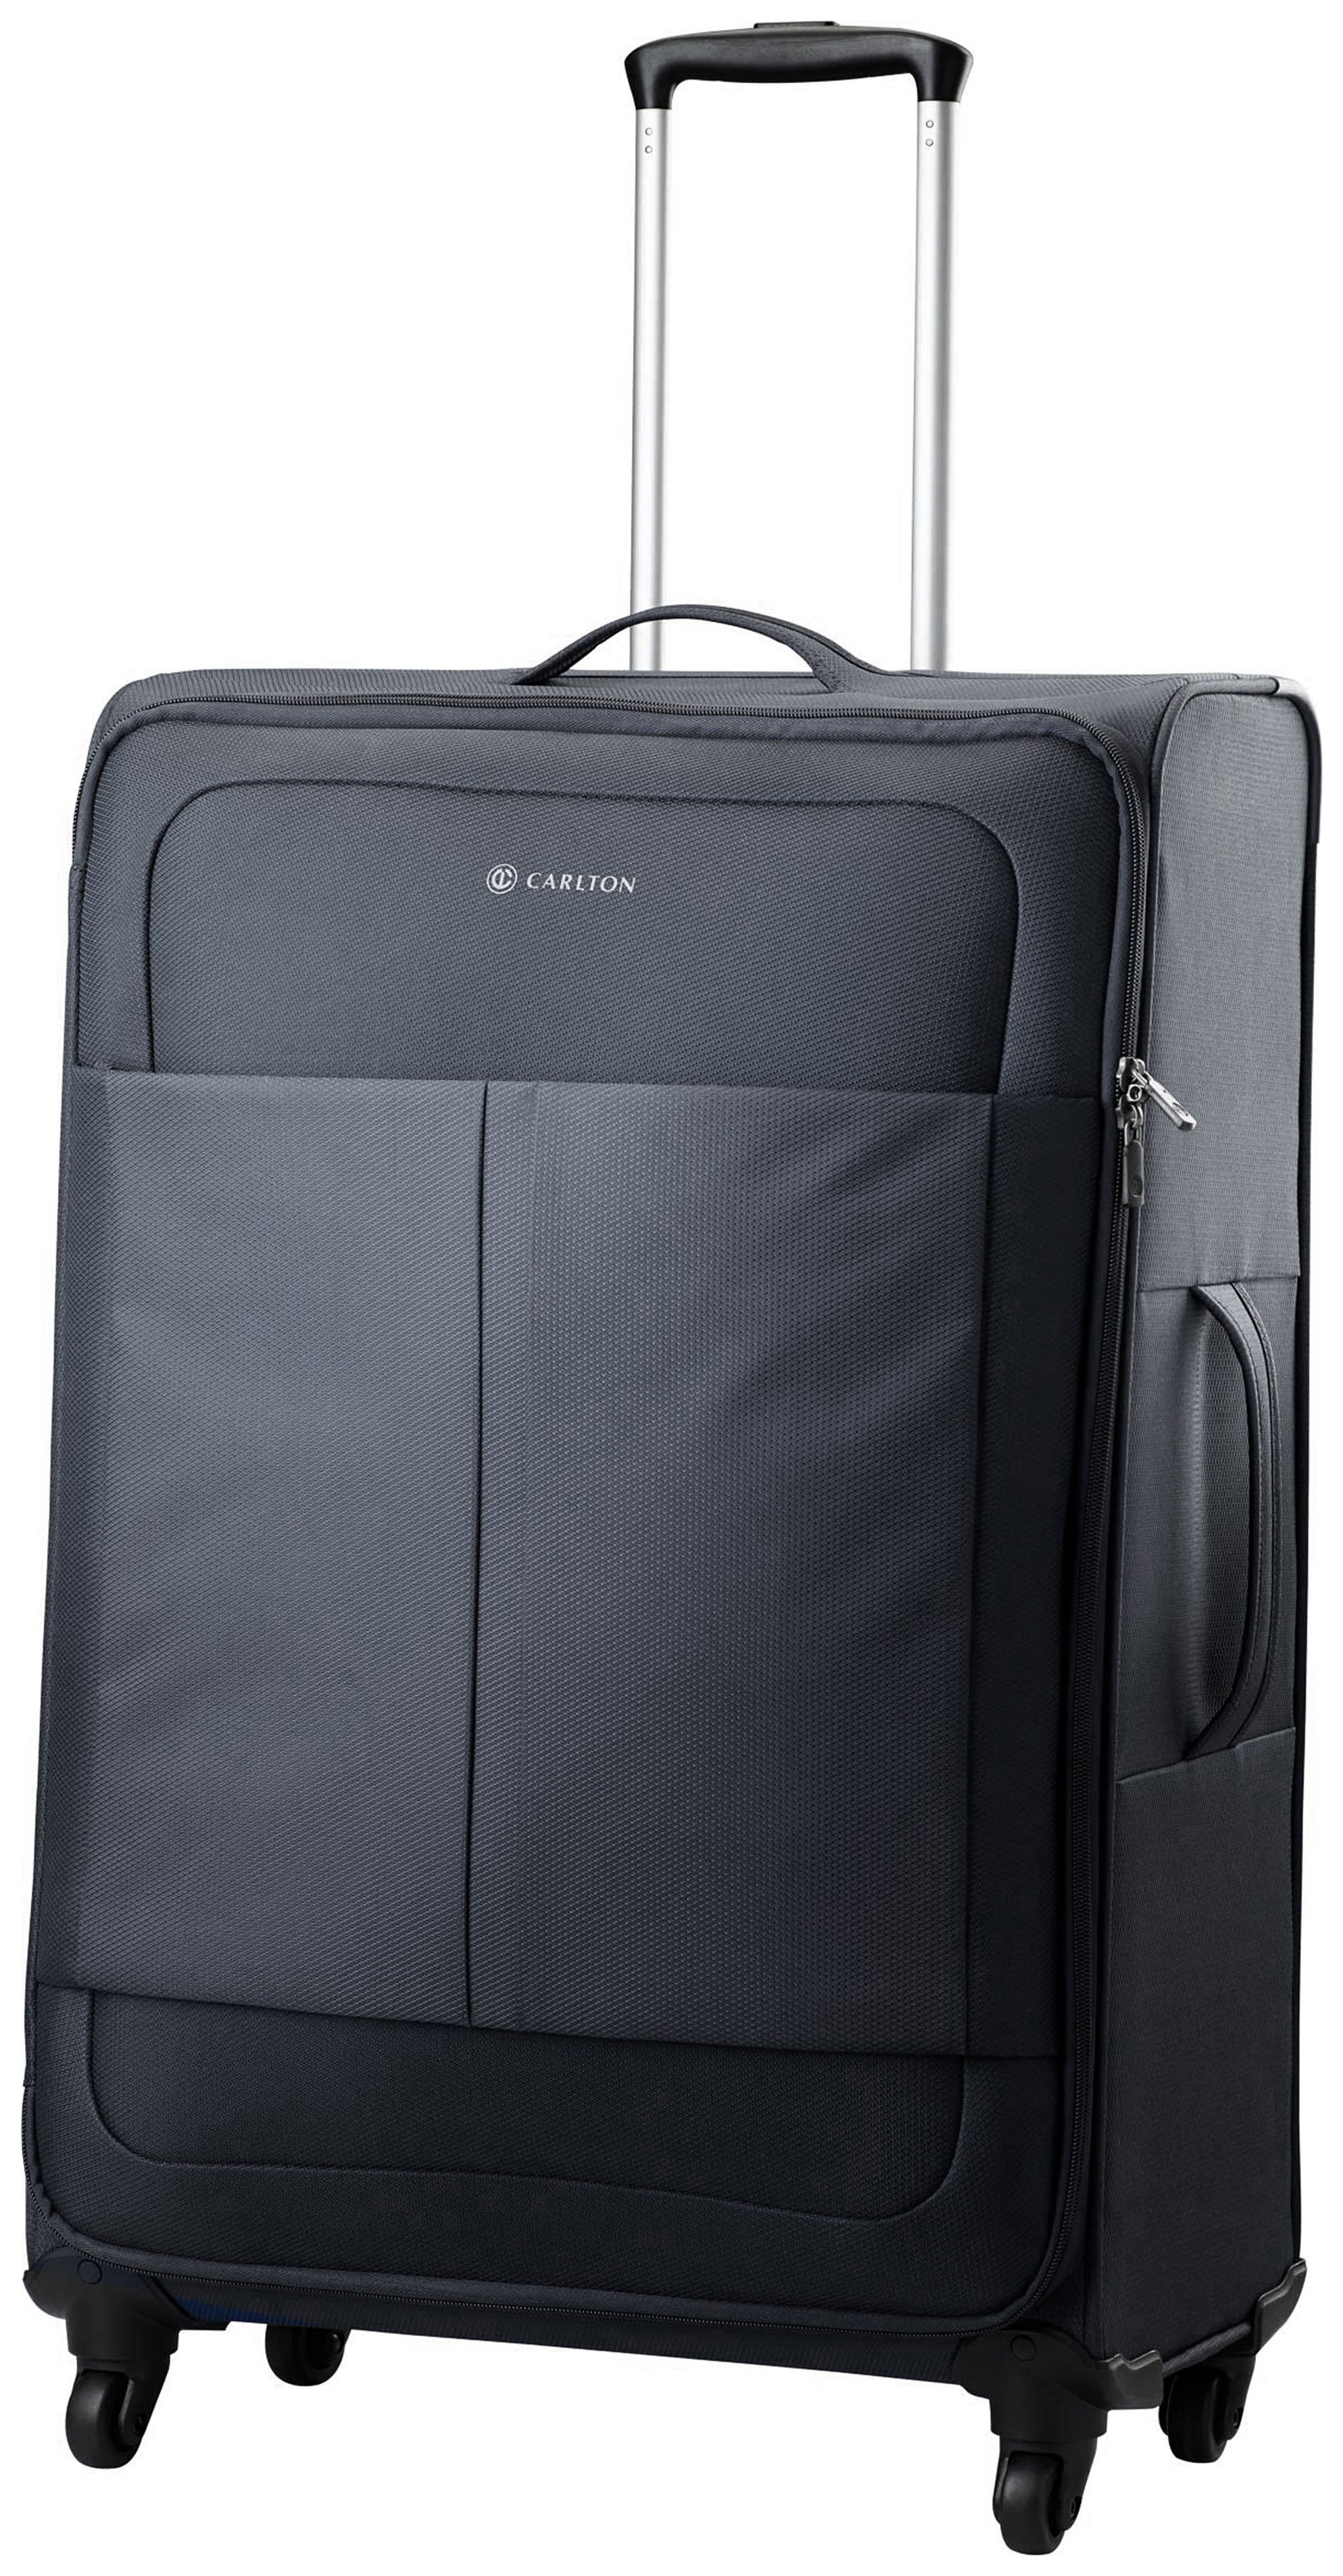 Image of Carlton - Ultralite Medium 4 Wheel Soft Suitcase - Black